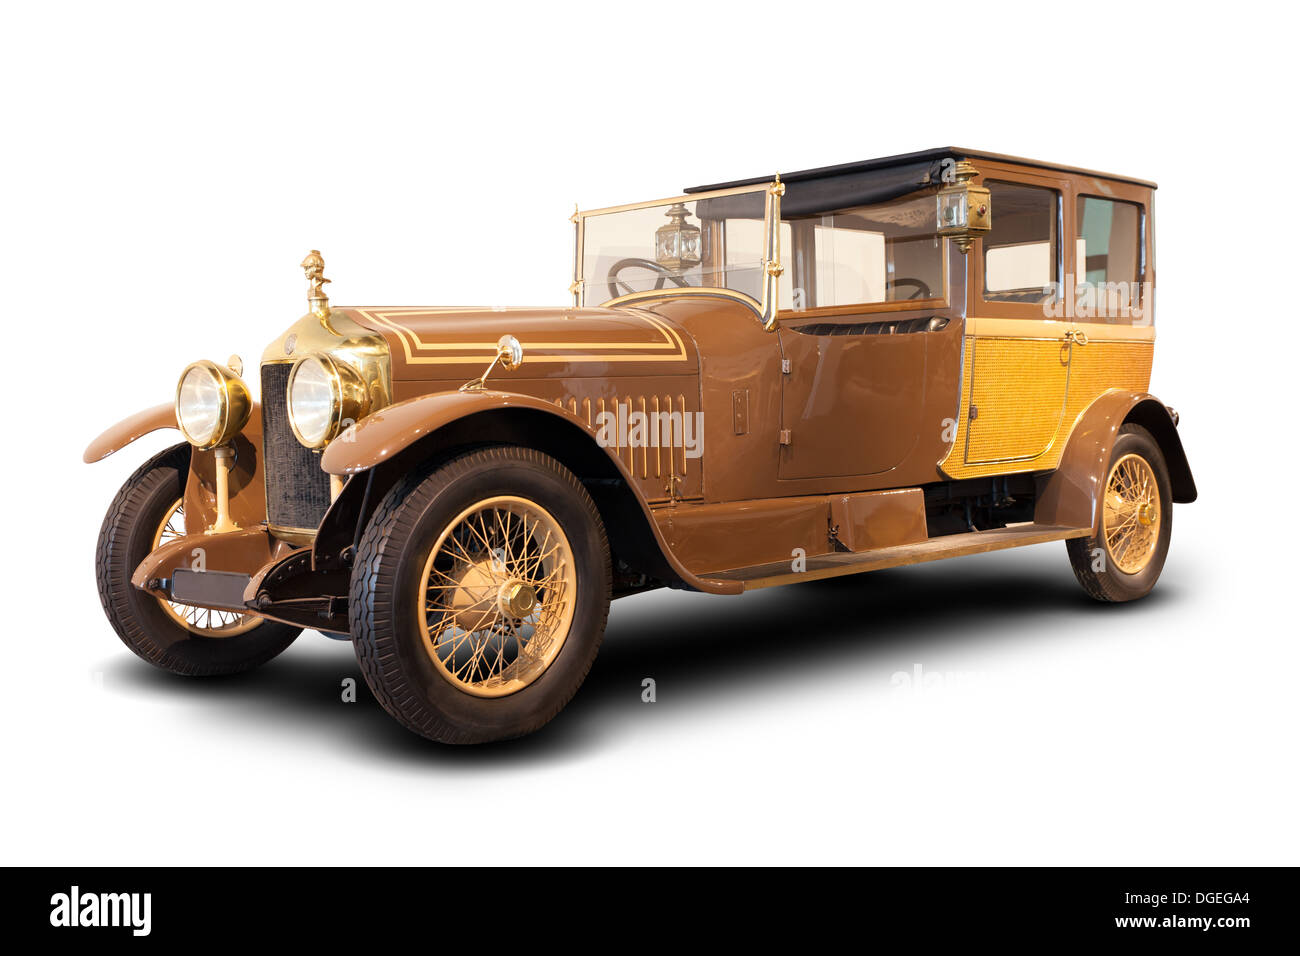 Old Classic car, Minerva (Belgium) from 1920s isolated - Stock Image